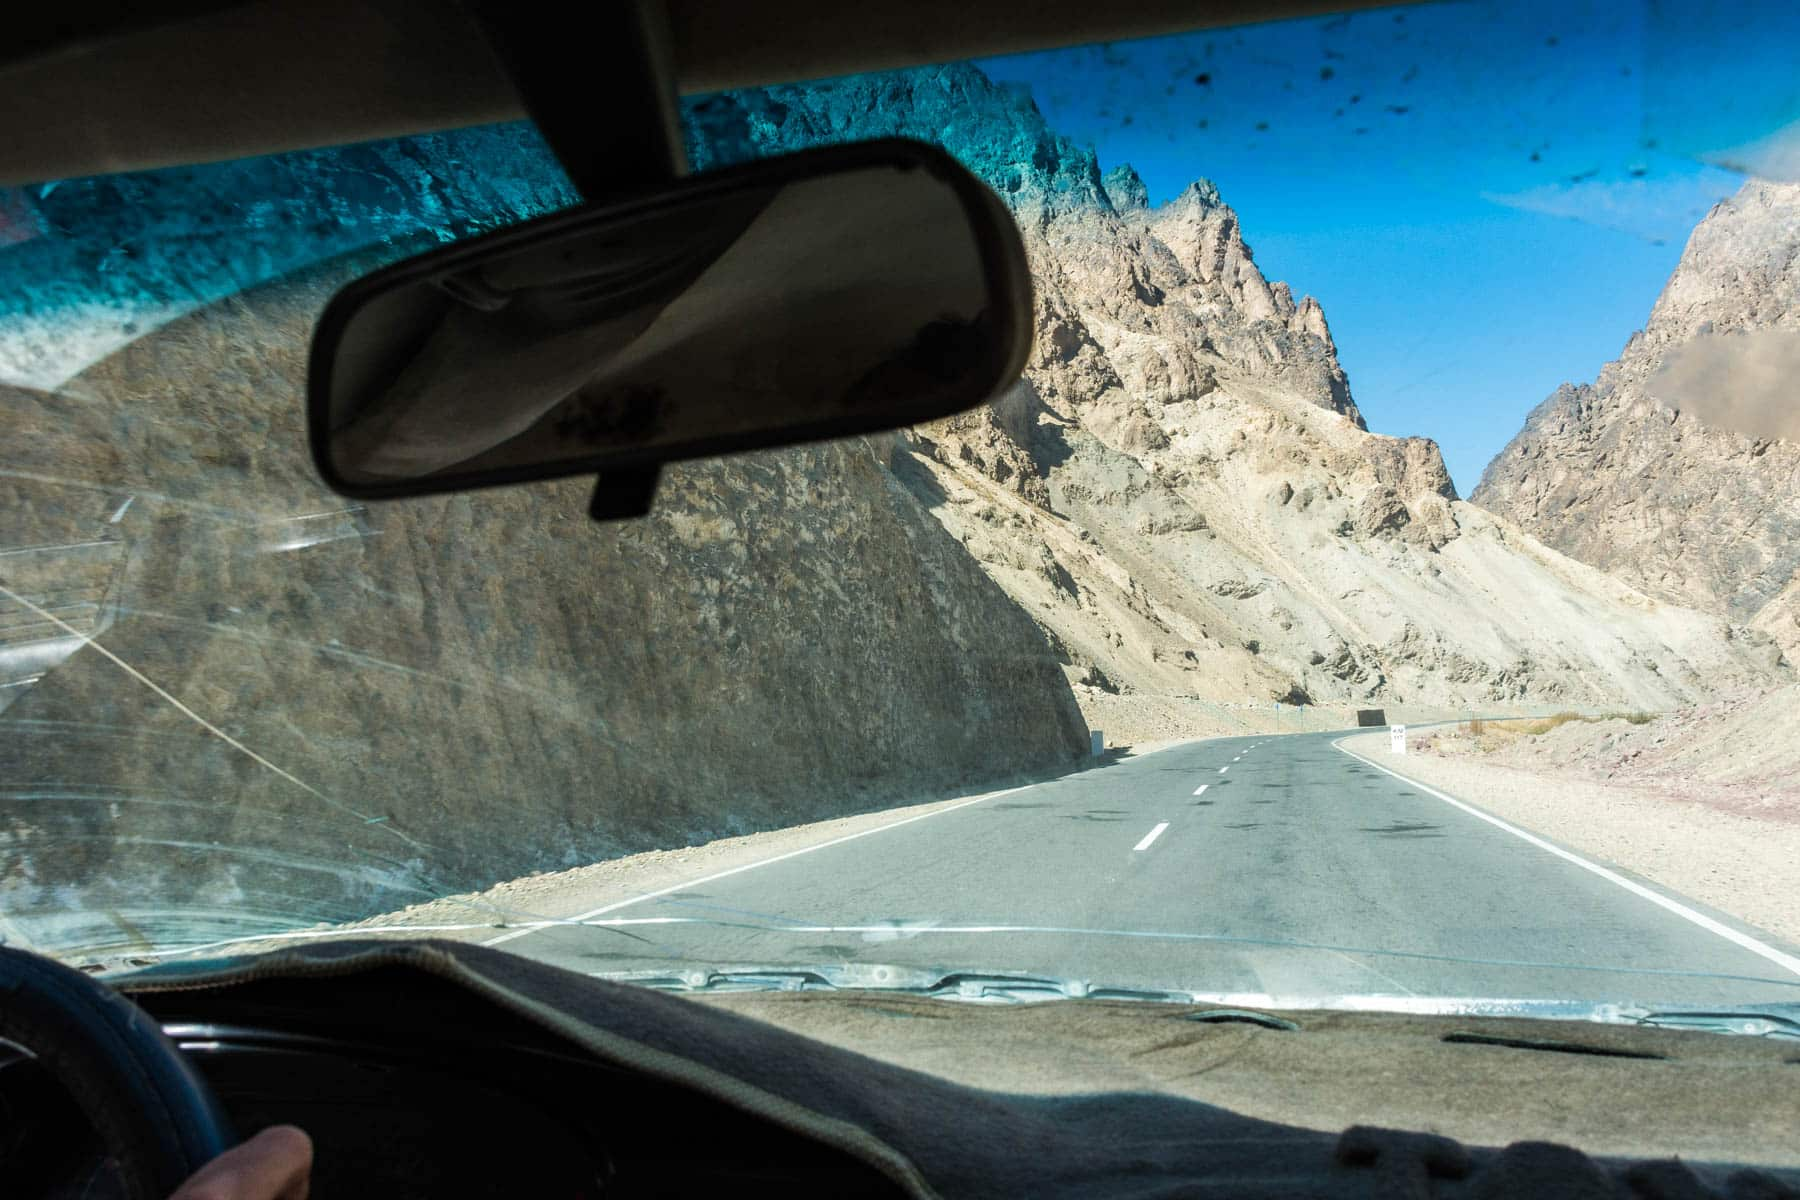 Ways of getting more off the beaten track while traveling - Driving around in Bamiyan, Afghanistan - Lost With Purpose travel blog